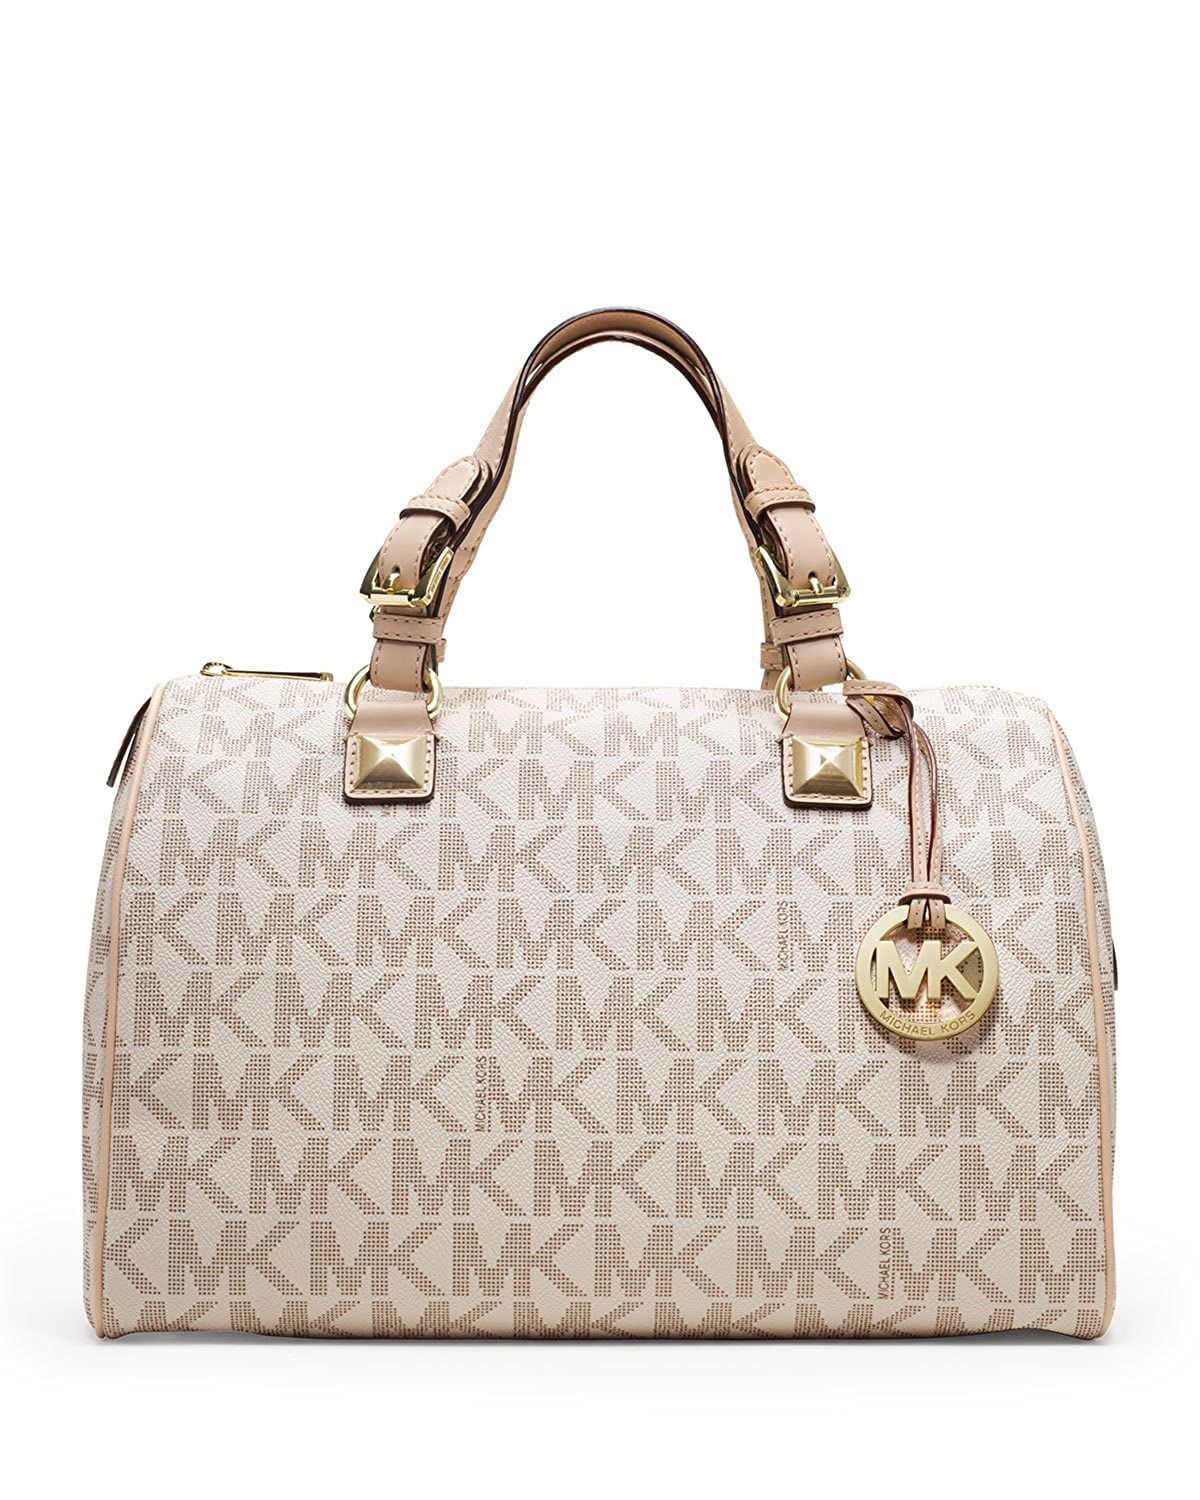 f49ec1abdfaff8 Amazon.com: Michael Kors Womens Grayson Large Logo Satchel Vanilla Handbag:  Shoes